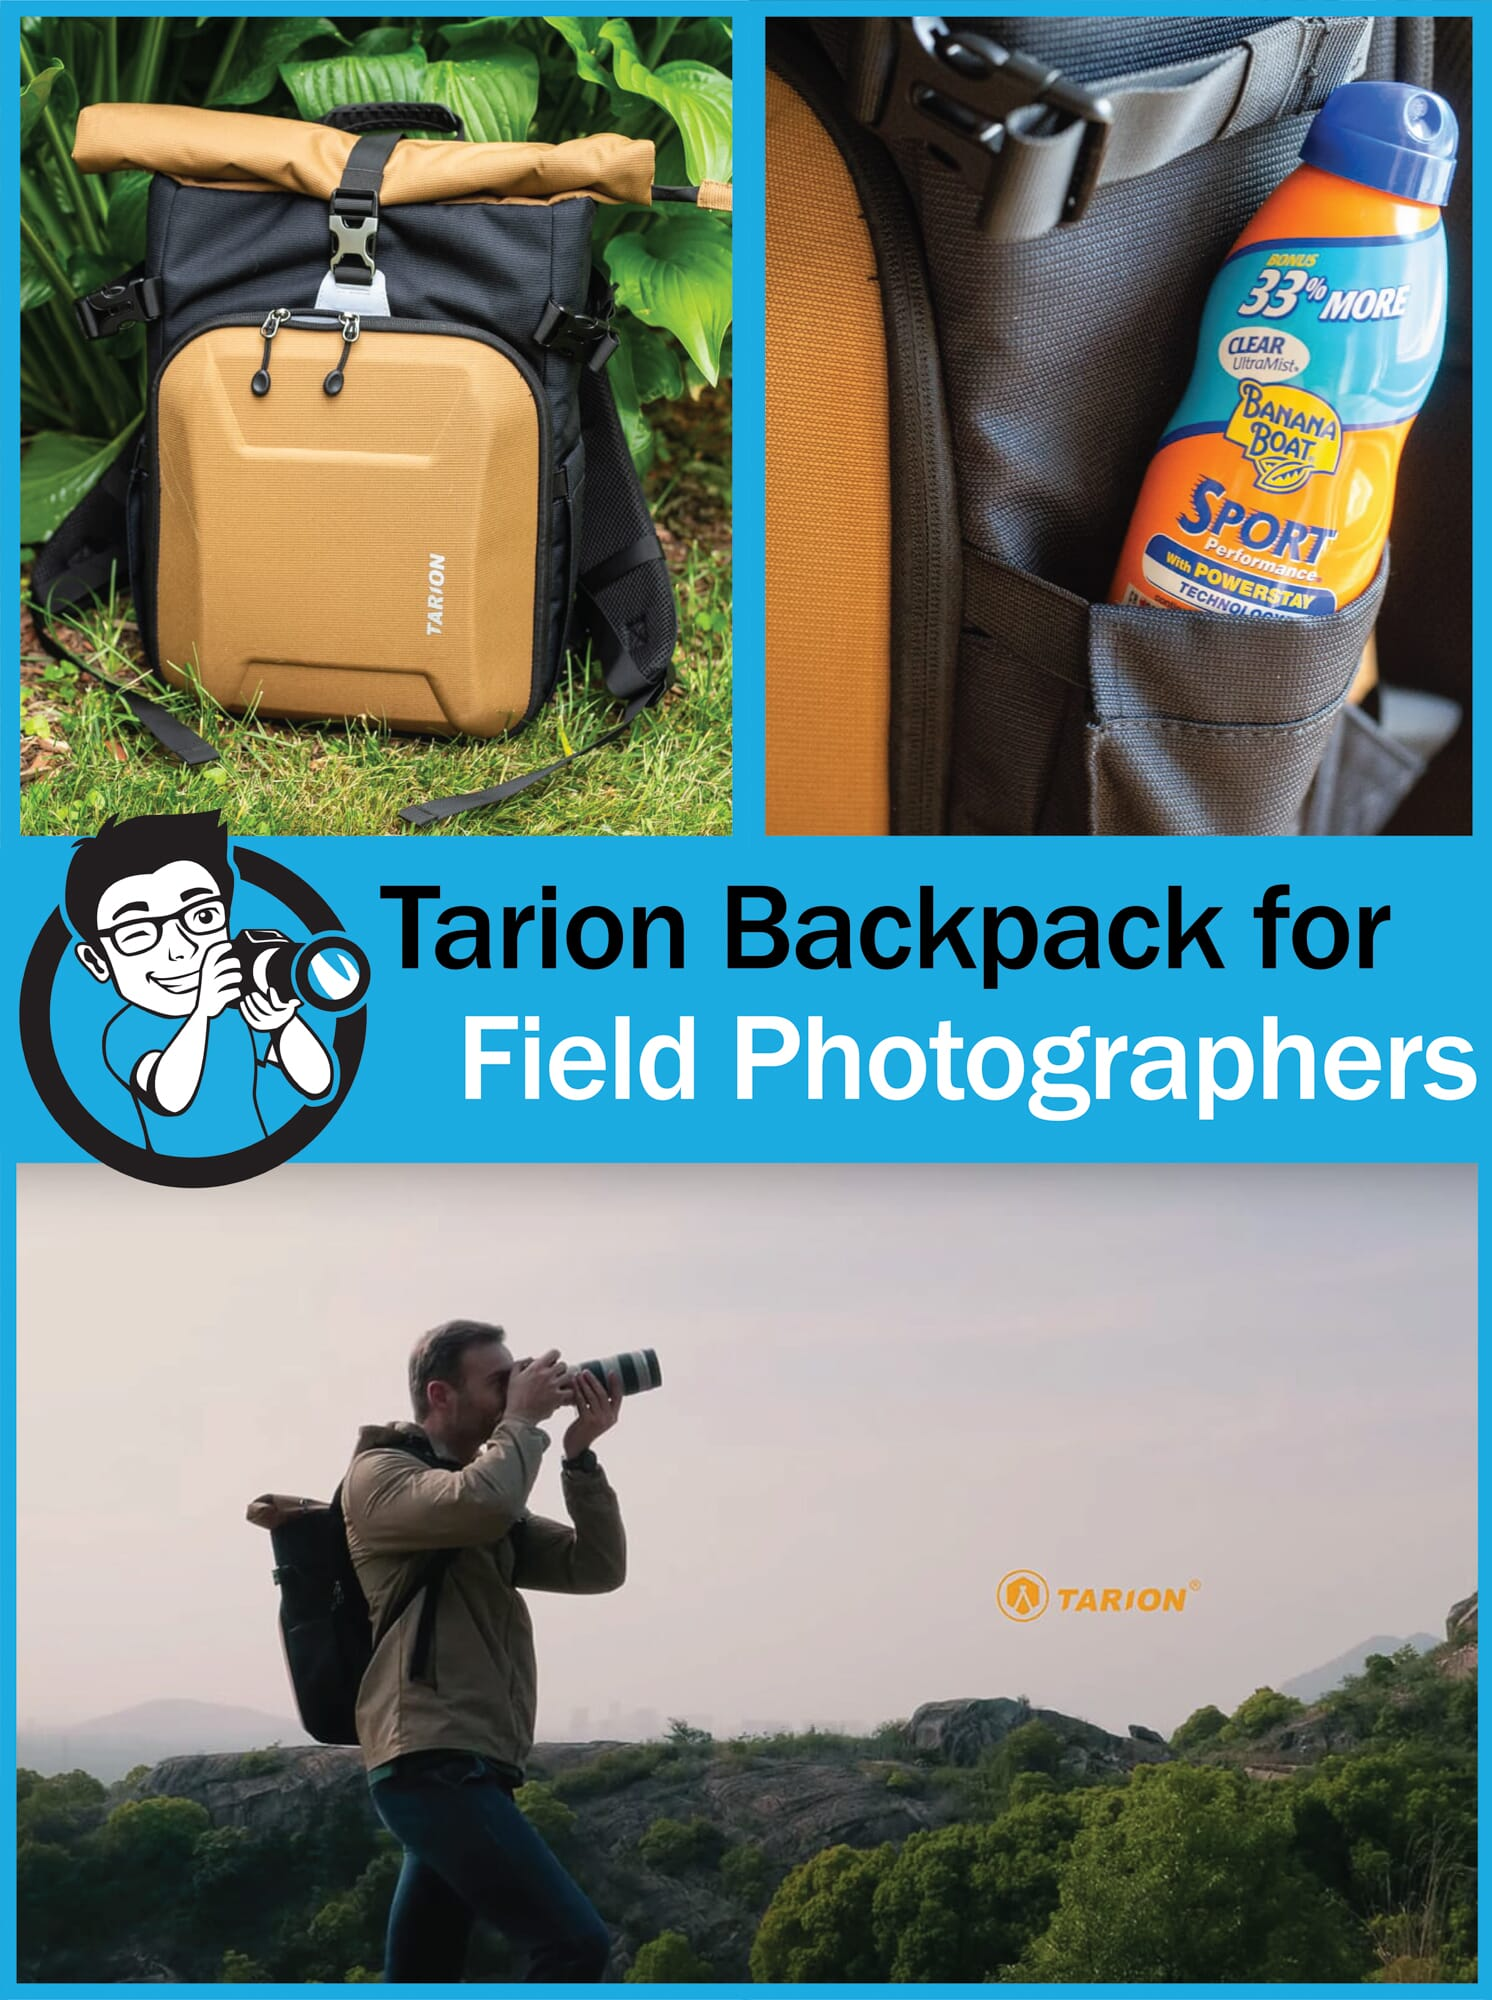 Tarion Backpack for Field Photographers Review